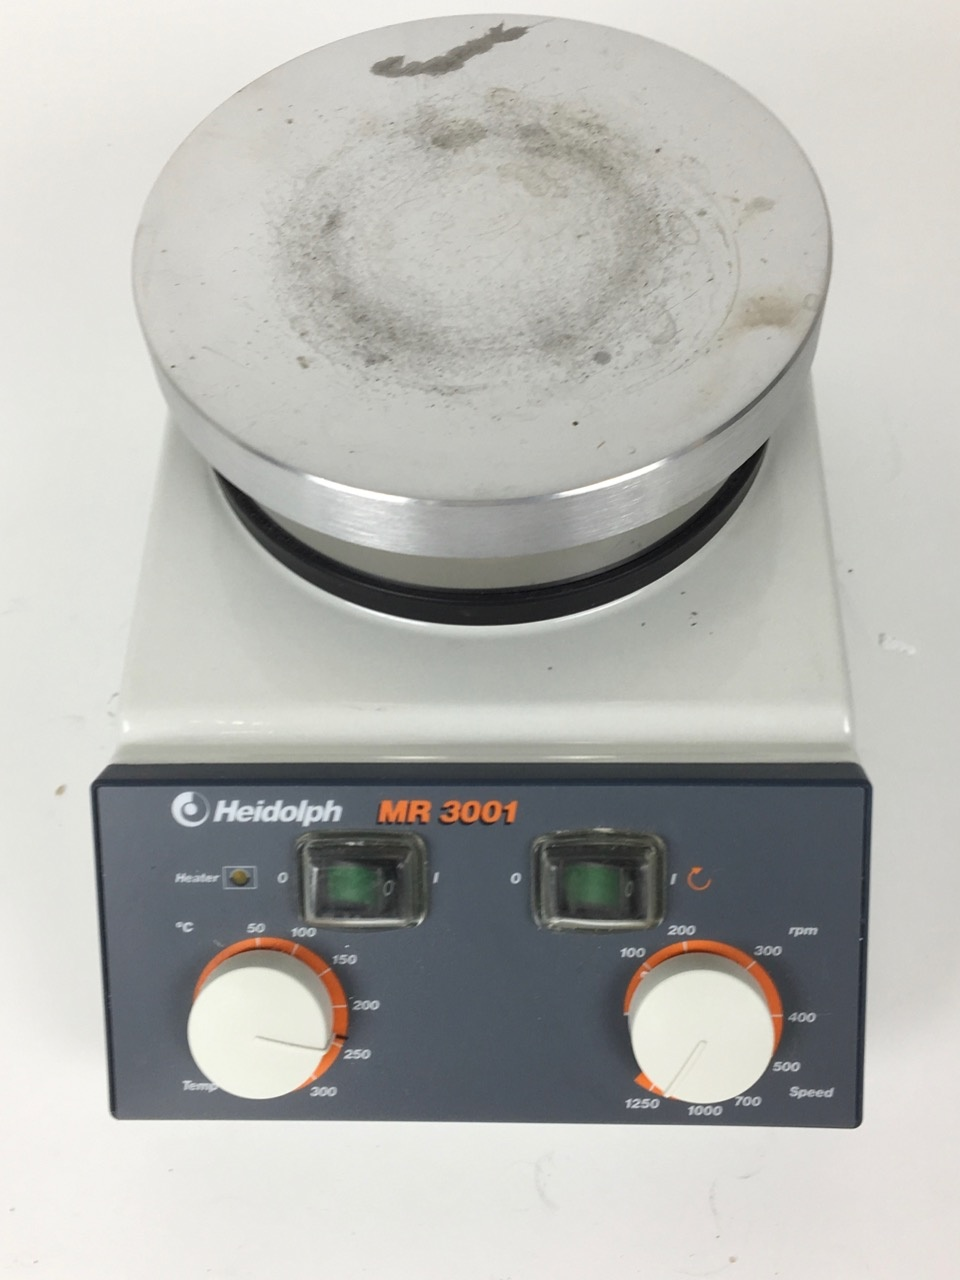 Heidolph Refurbished Heidolph MR 3001 Magnetic Stirrer with Heating